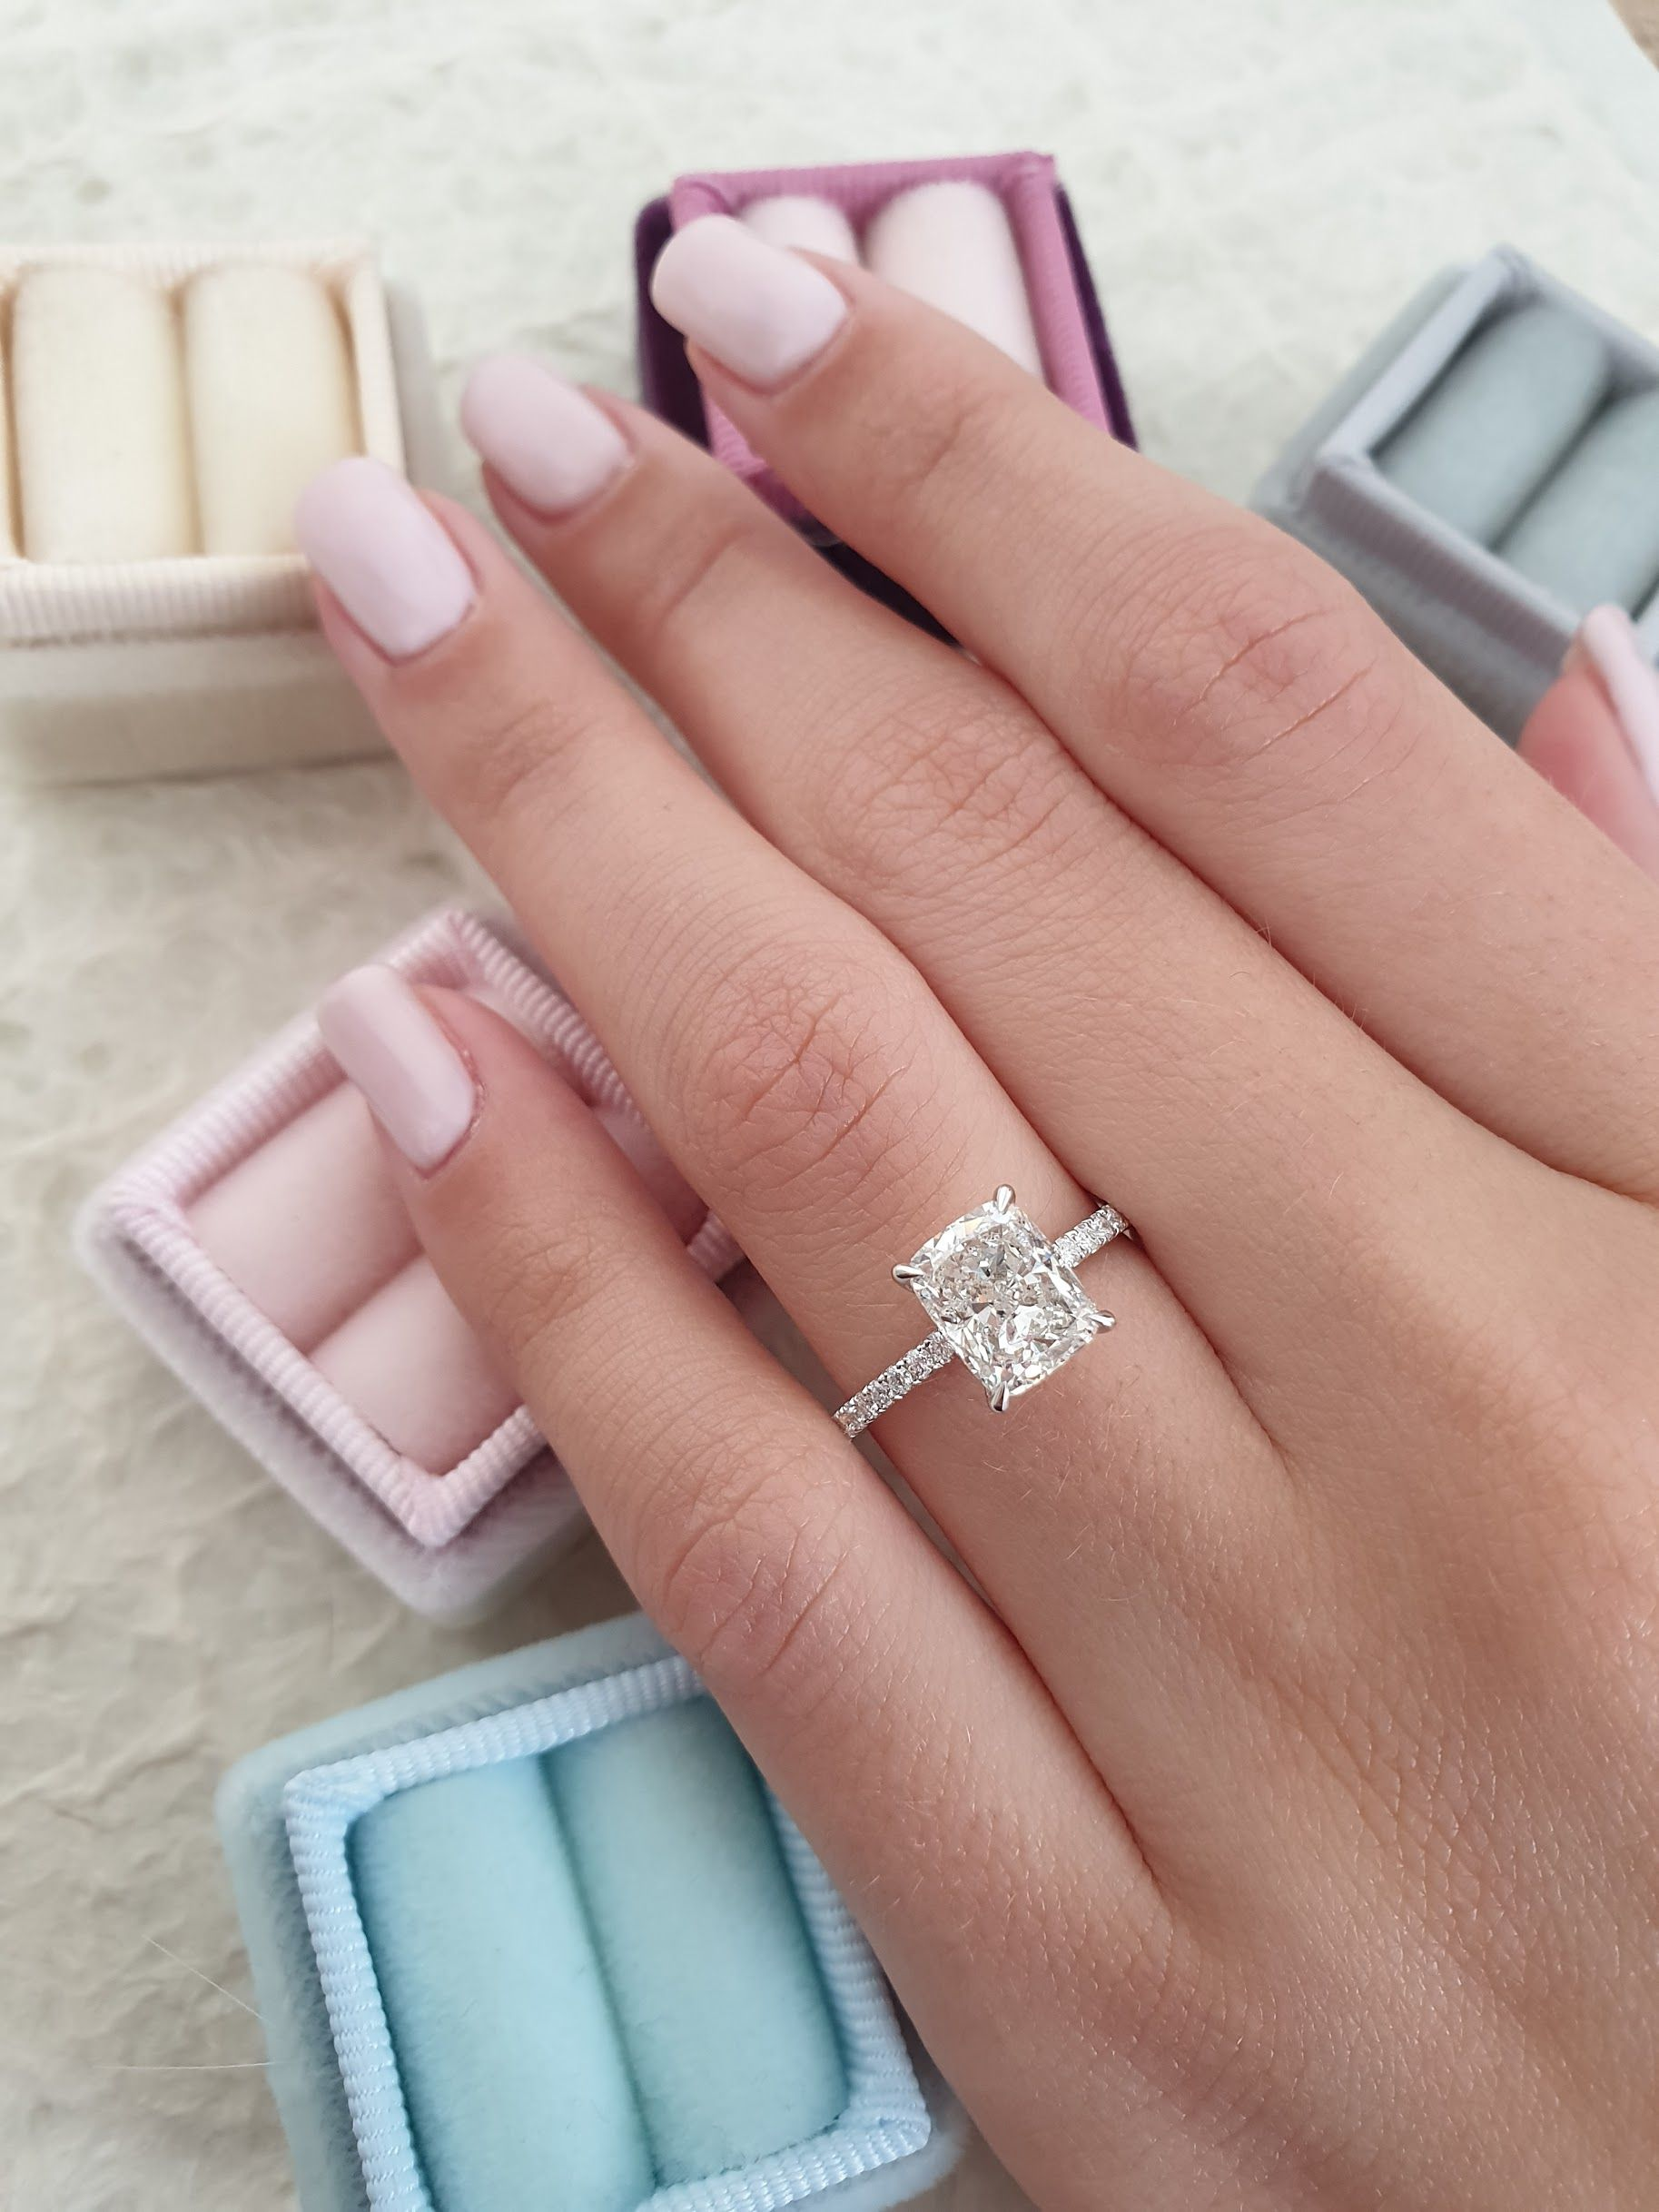 Rings For Women 2163 New Buy Gold Ring Online Silver Jewlery Designs Ladies Costume Jewellery Blue Sapphire Ring